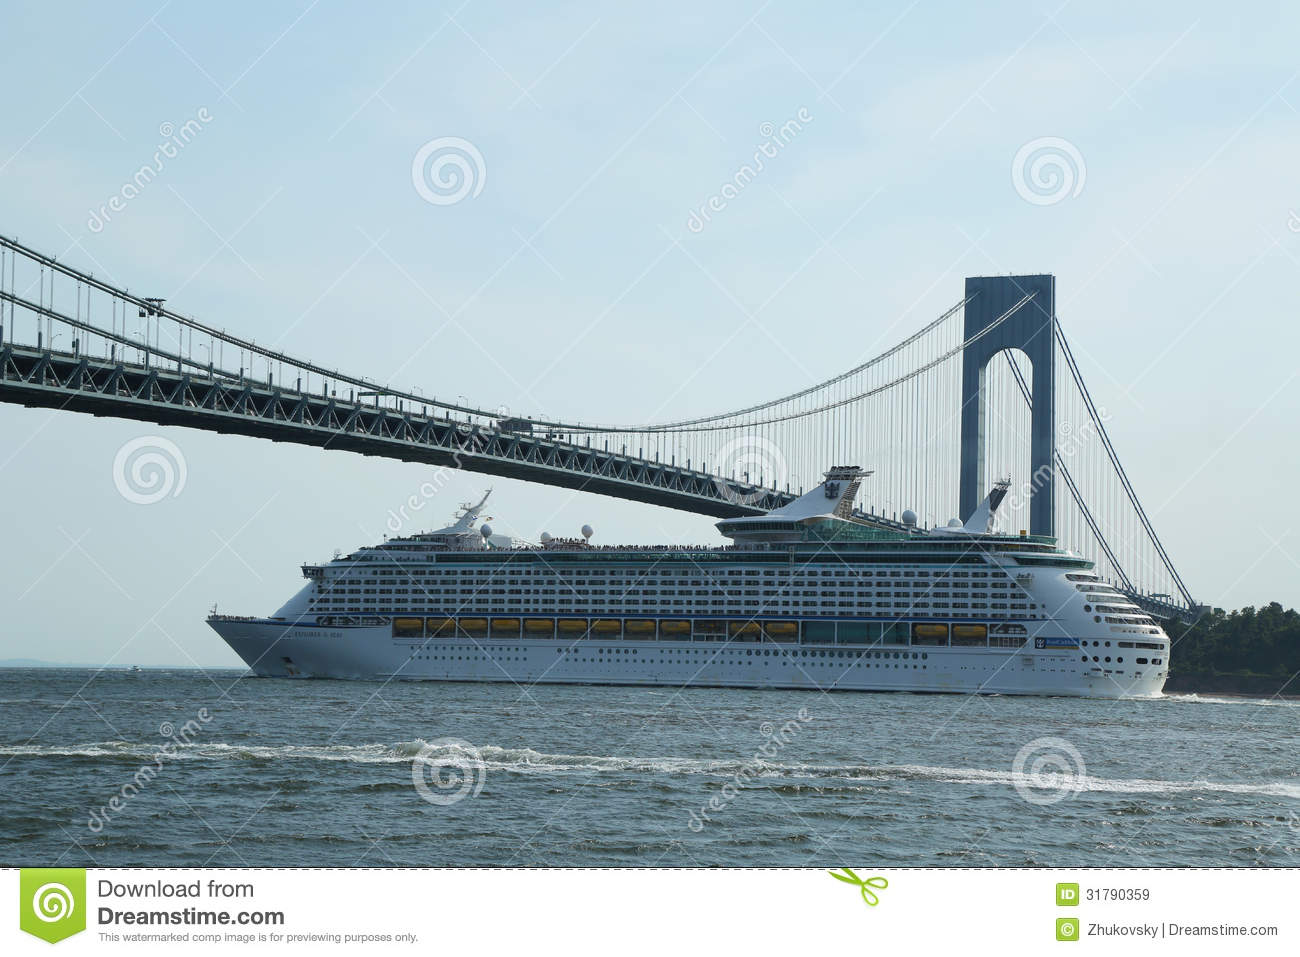 Royal Caribbean Explorer Of The Seas Cruise Ship Under Verrazano.